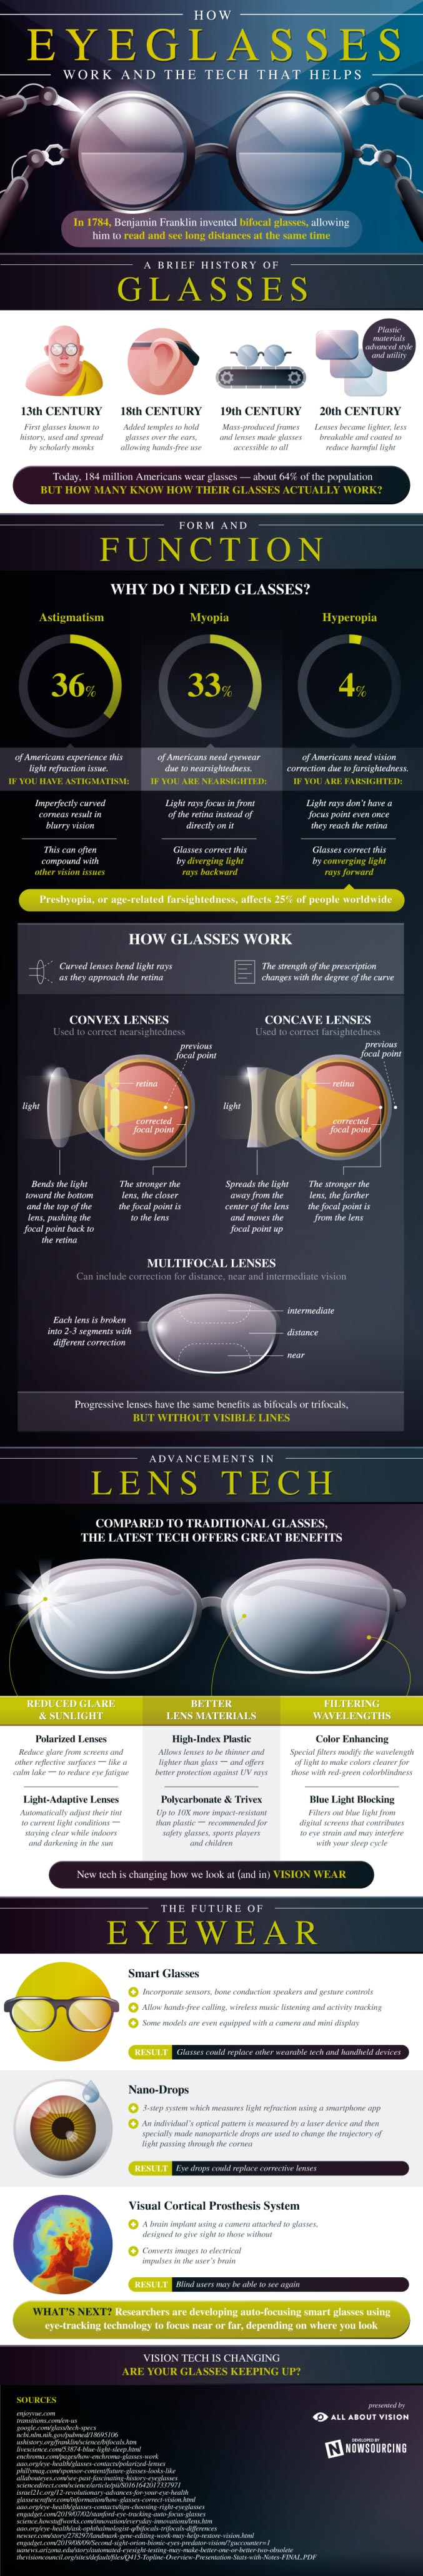 How eyeglasses work and the tech that helps infographic